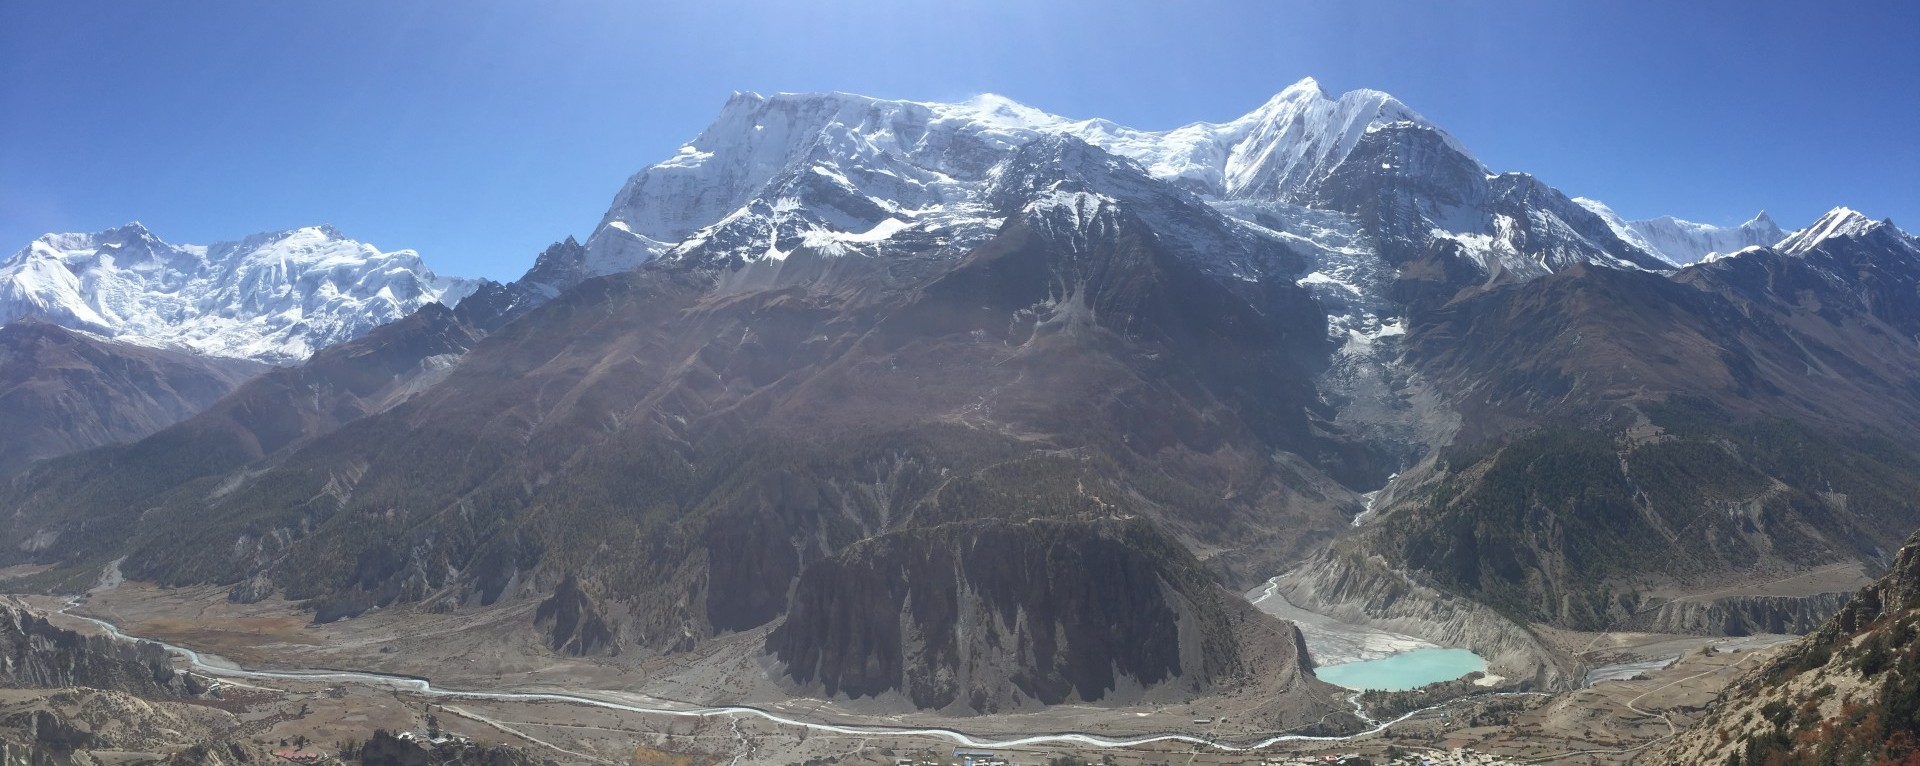 View of Mount  Annapurna 2,3 and Gangaprna and Gangapurna Glacier